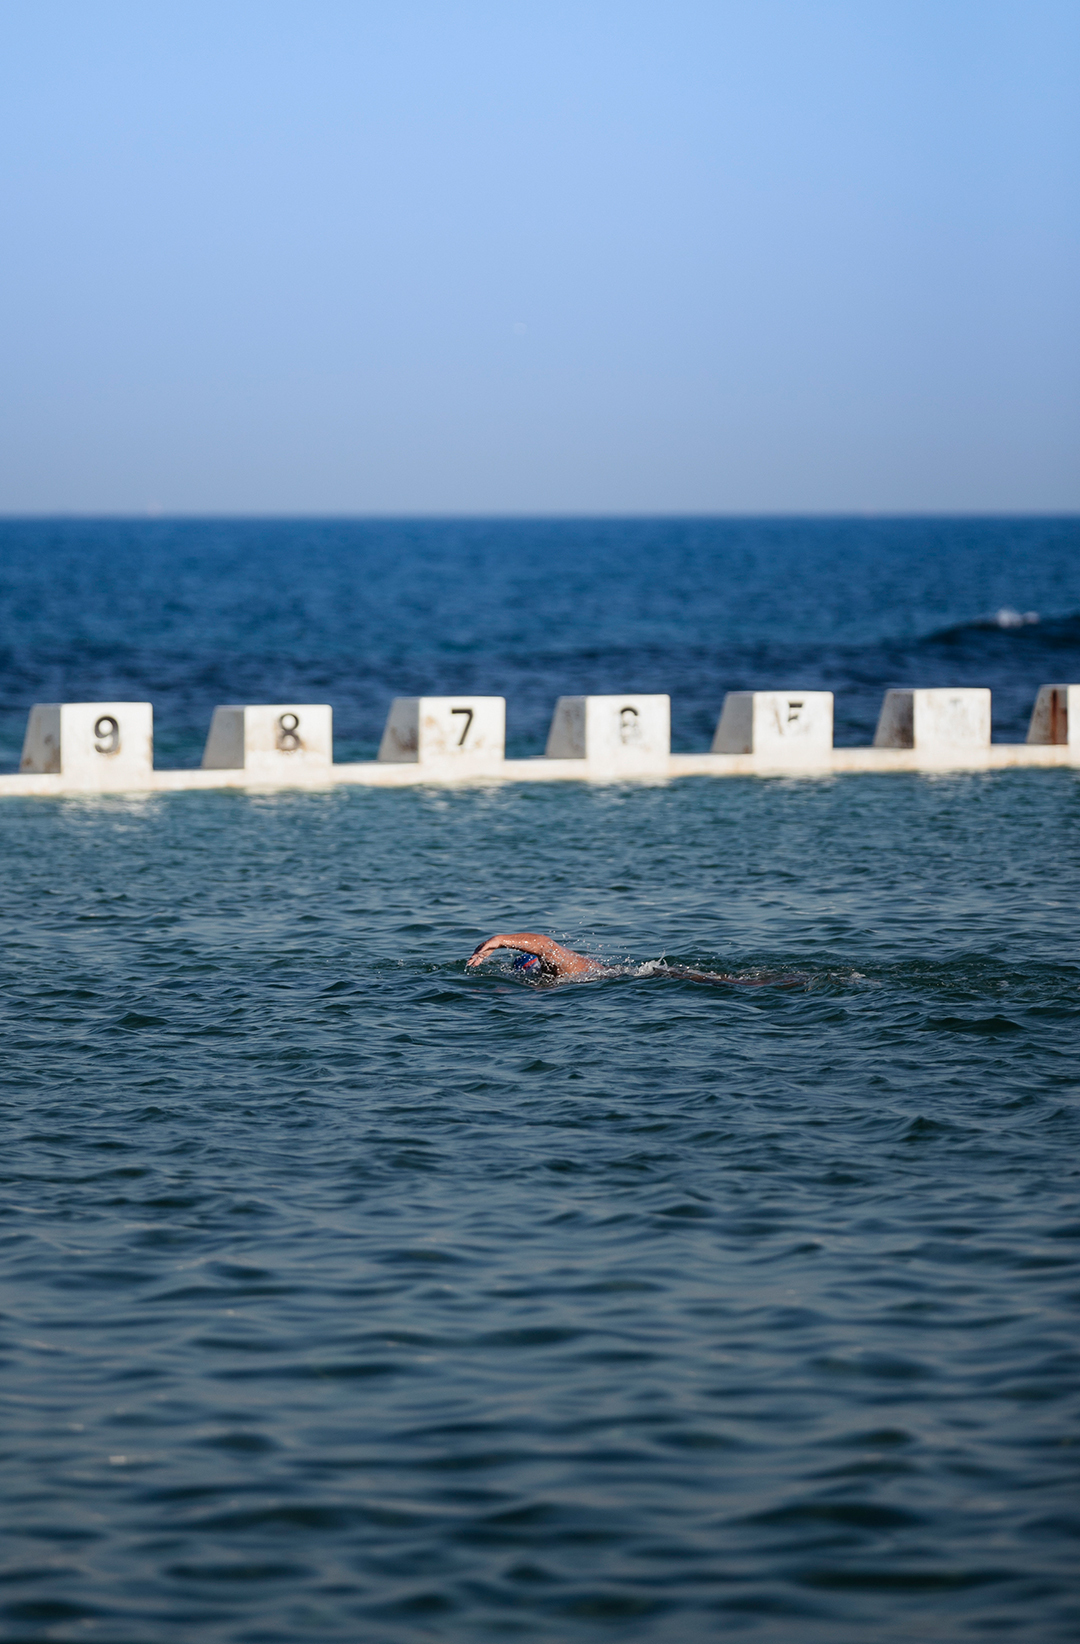 person swimming in ocean pool on clear day